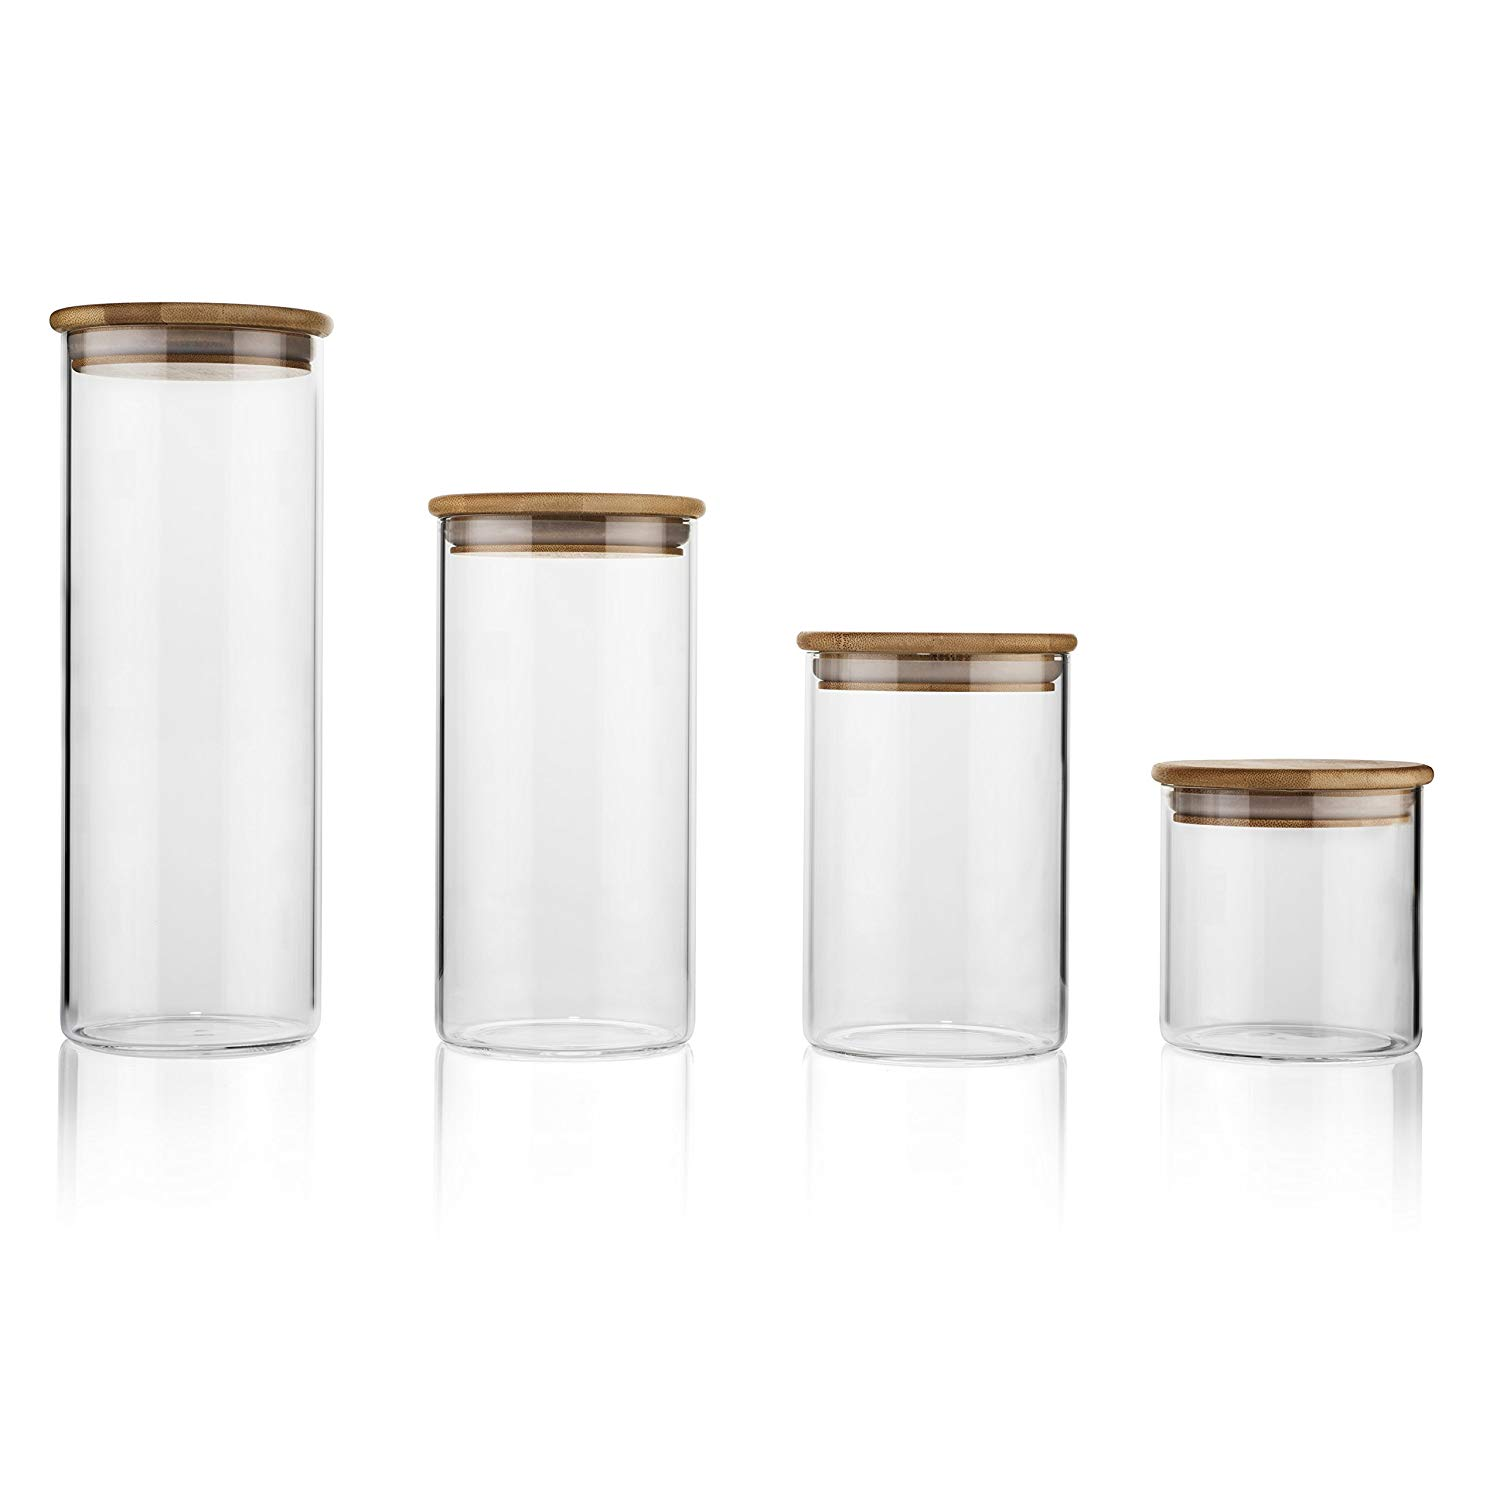 Glass Food Storage Containers with Bamboo Lids - $34.87